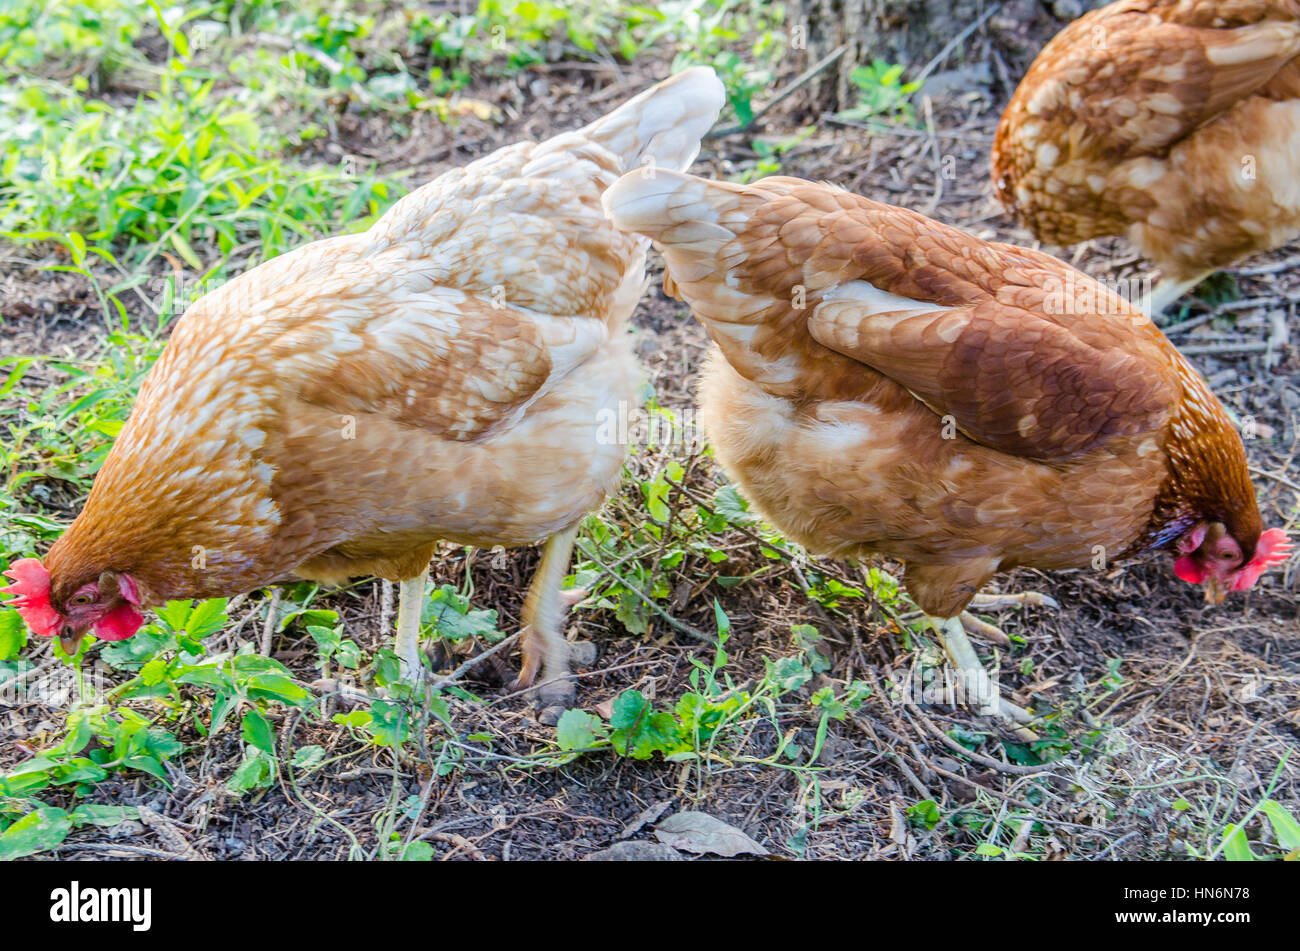 Three hens digging into ground eating - Stock Image